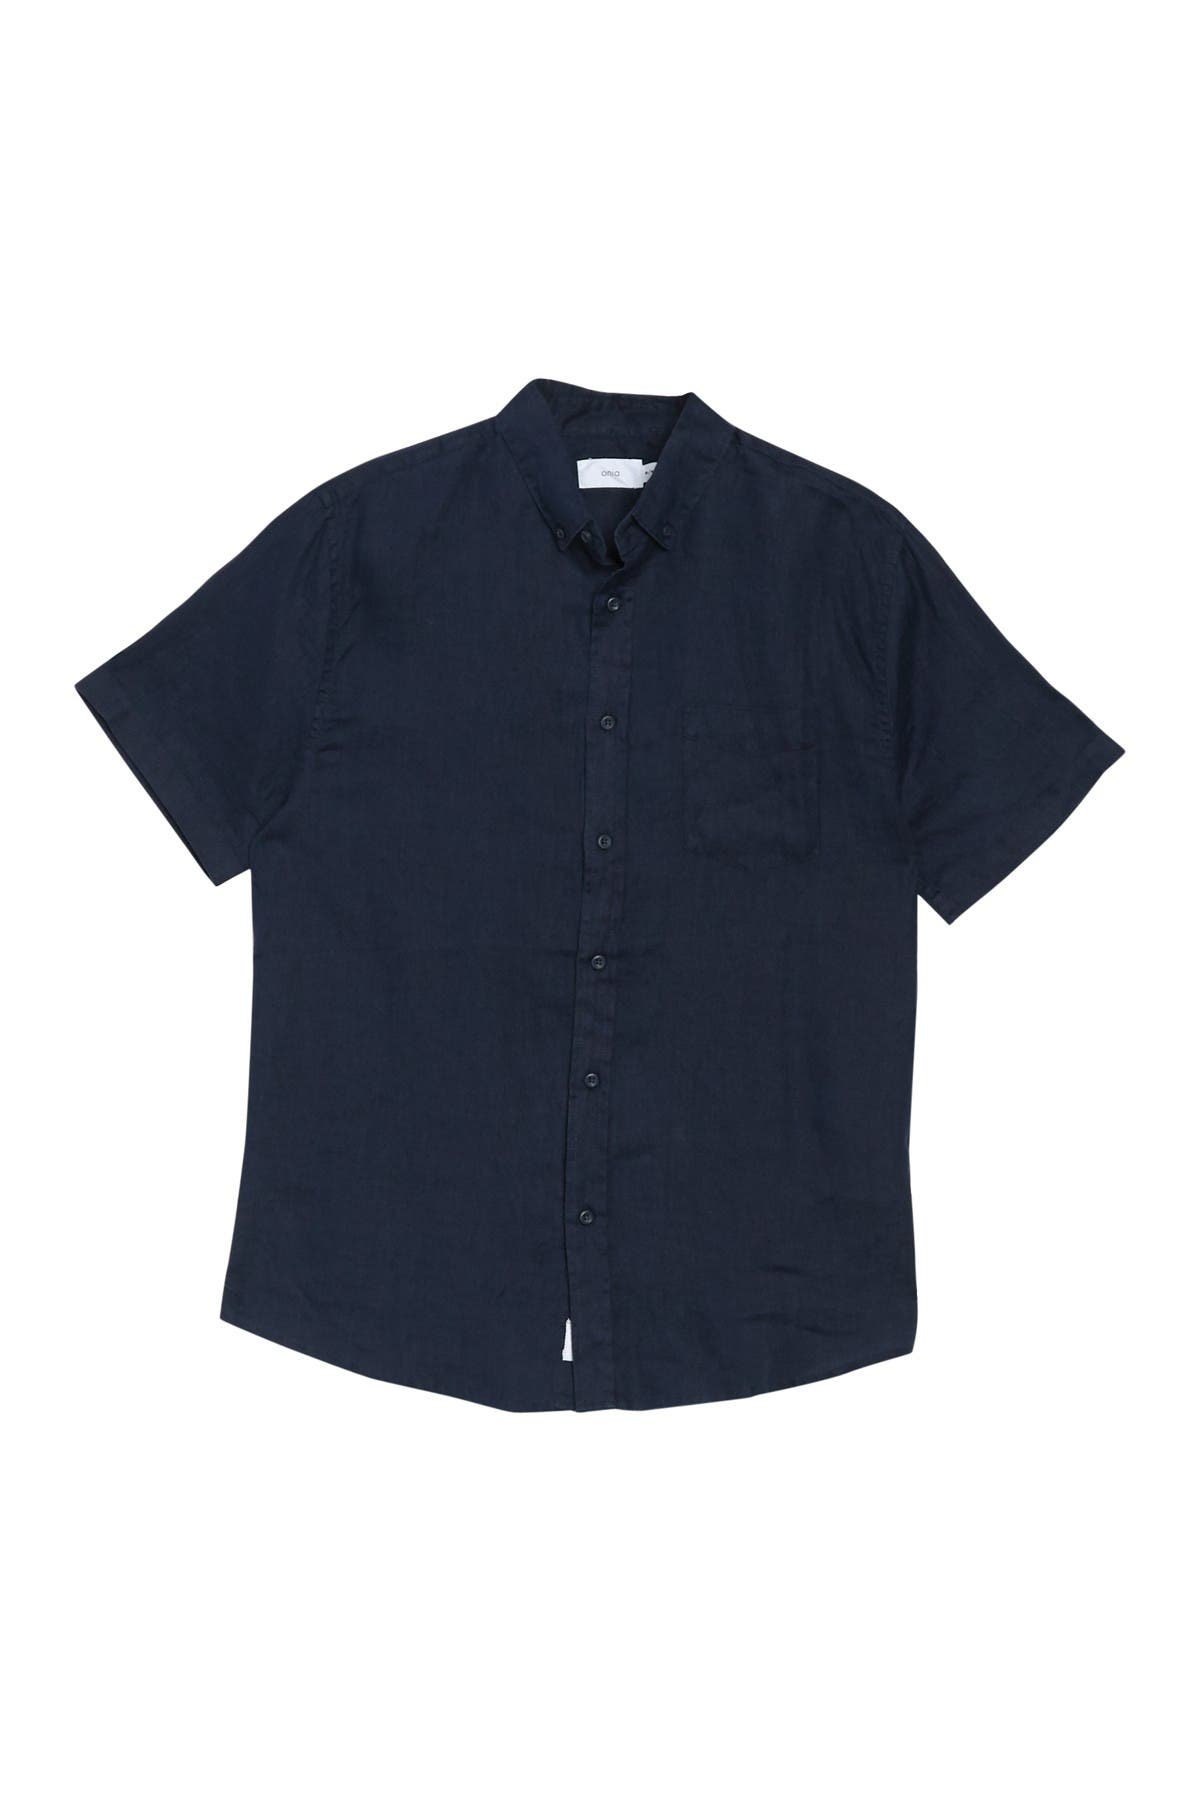 Image of Onia Jack Linen Shirt